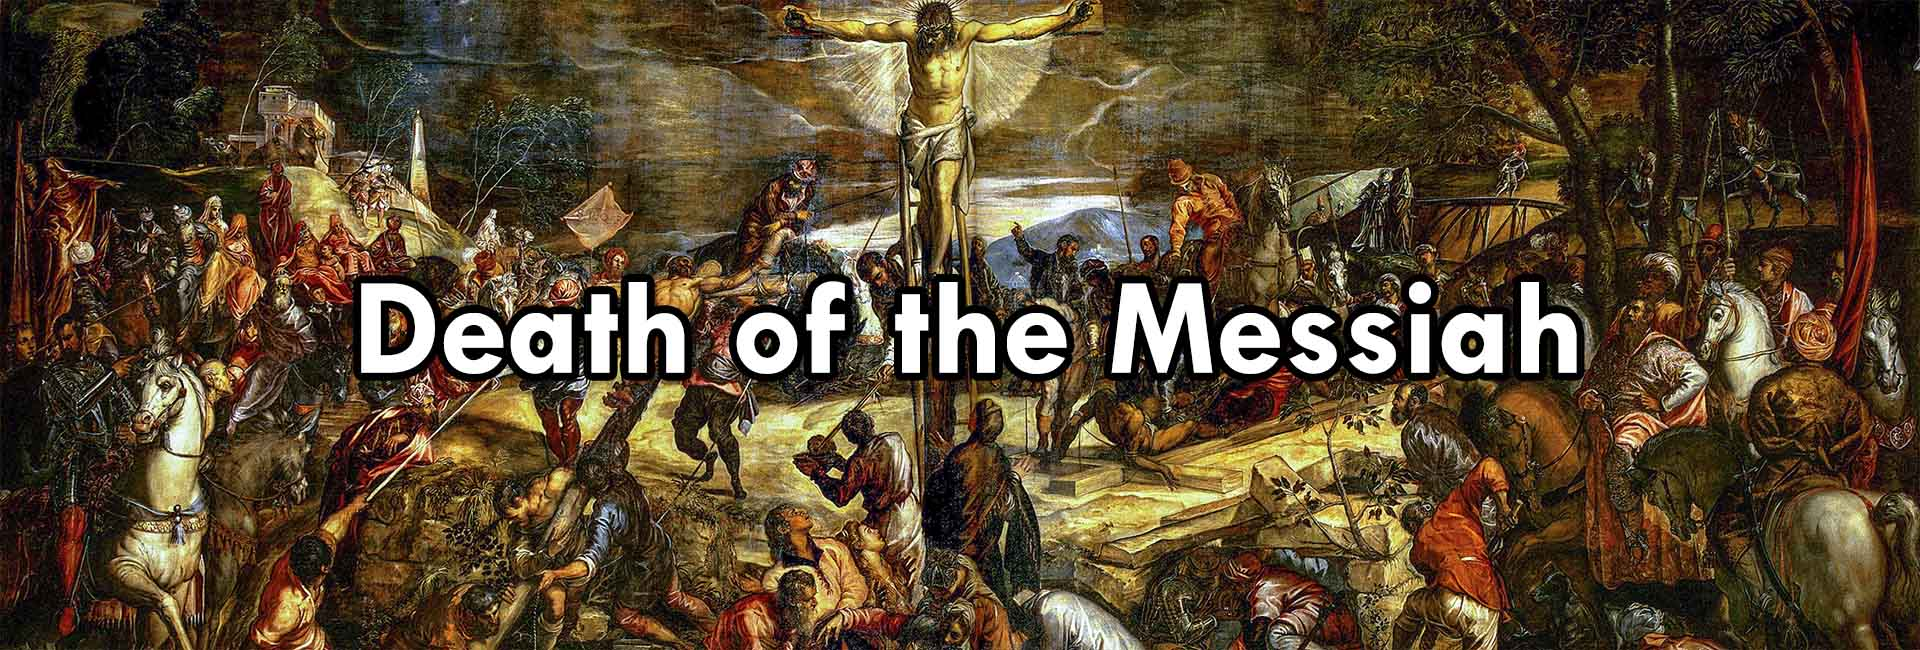 Death of the Messiah